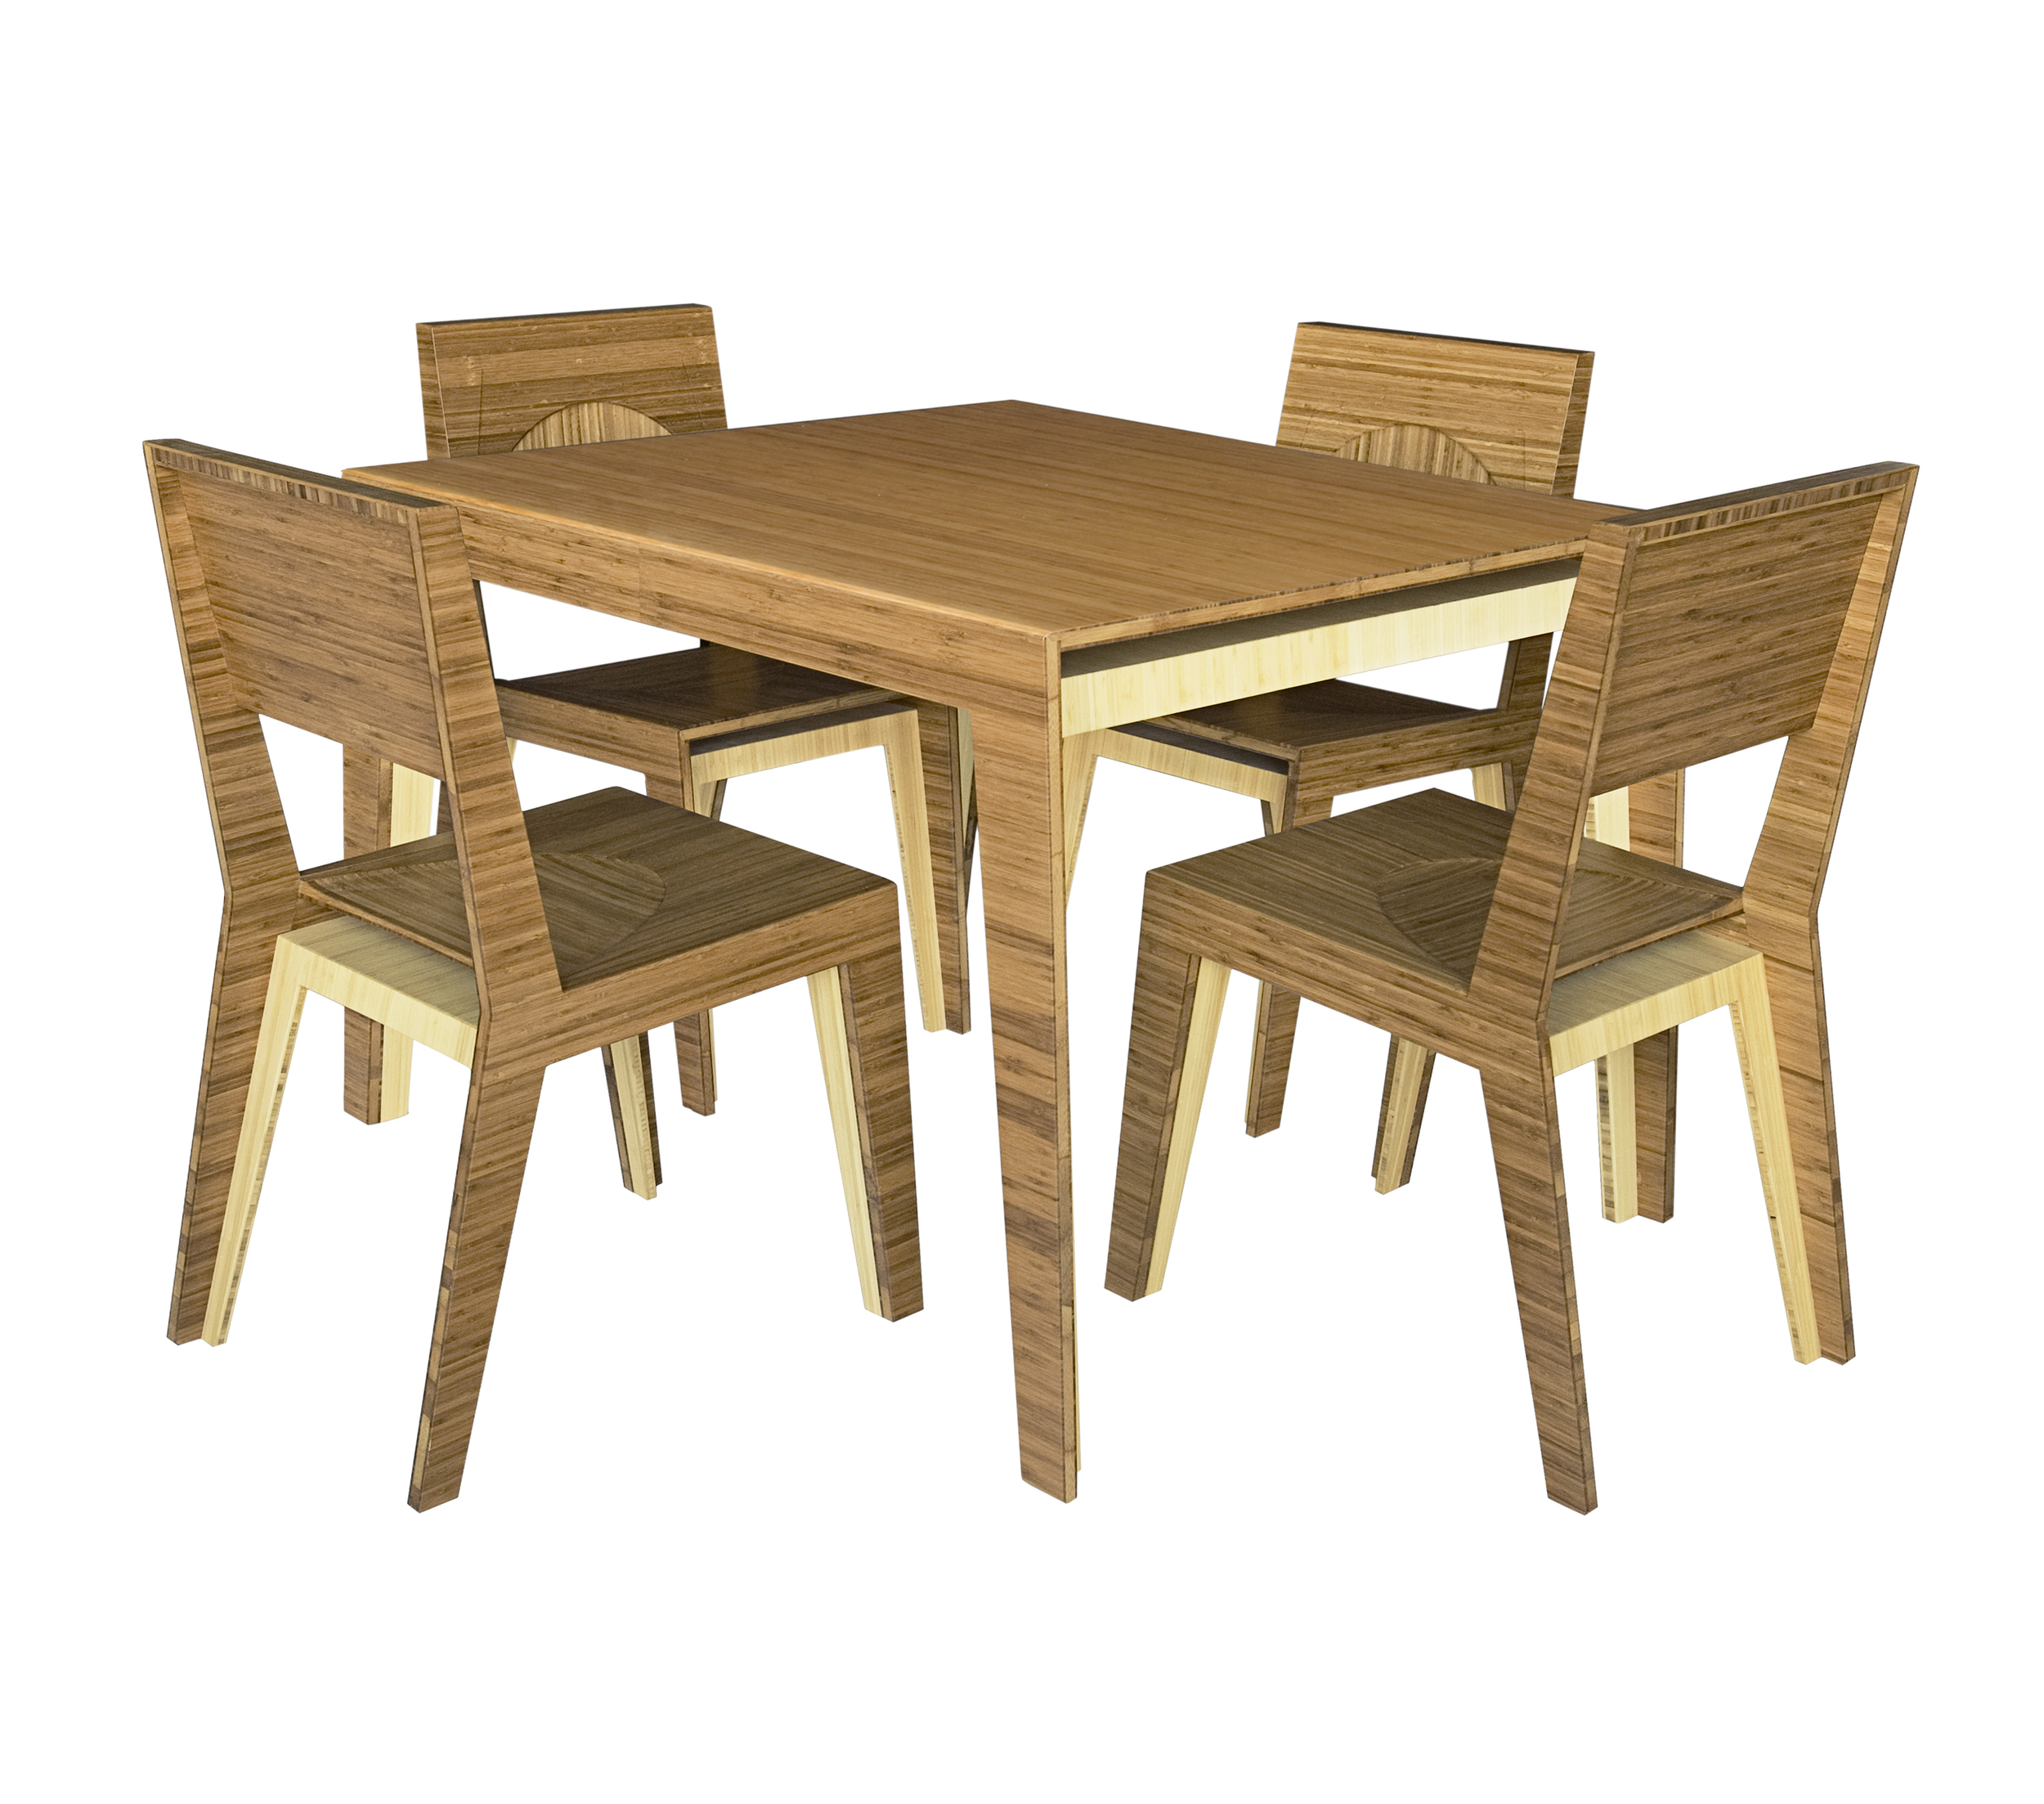 Hollow Dining Table / 4 Person